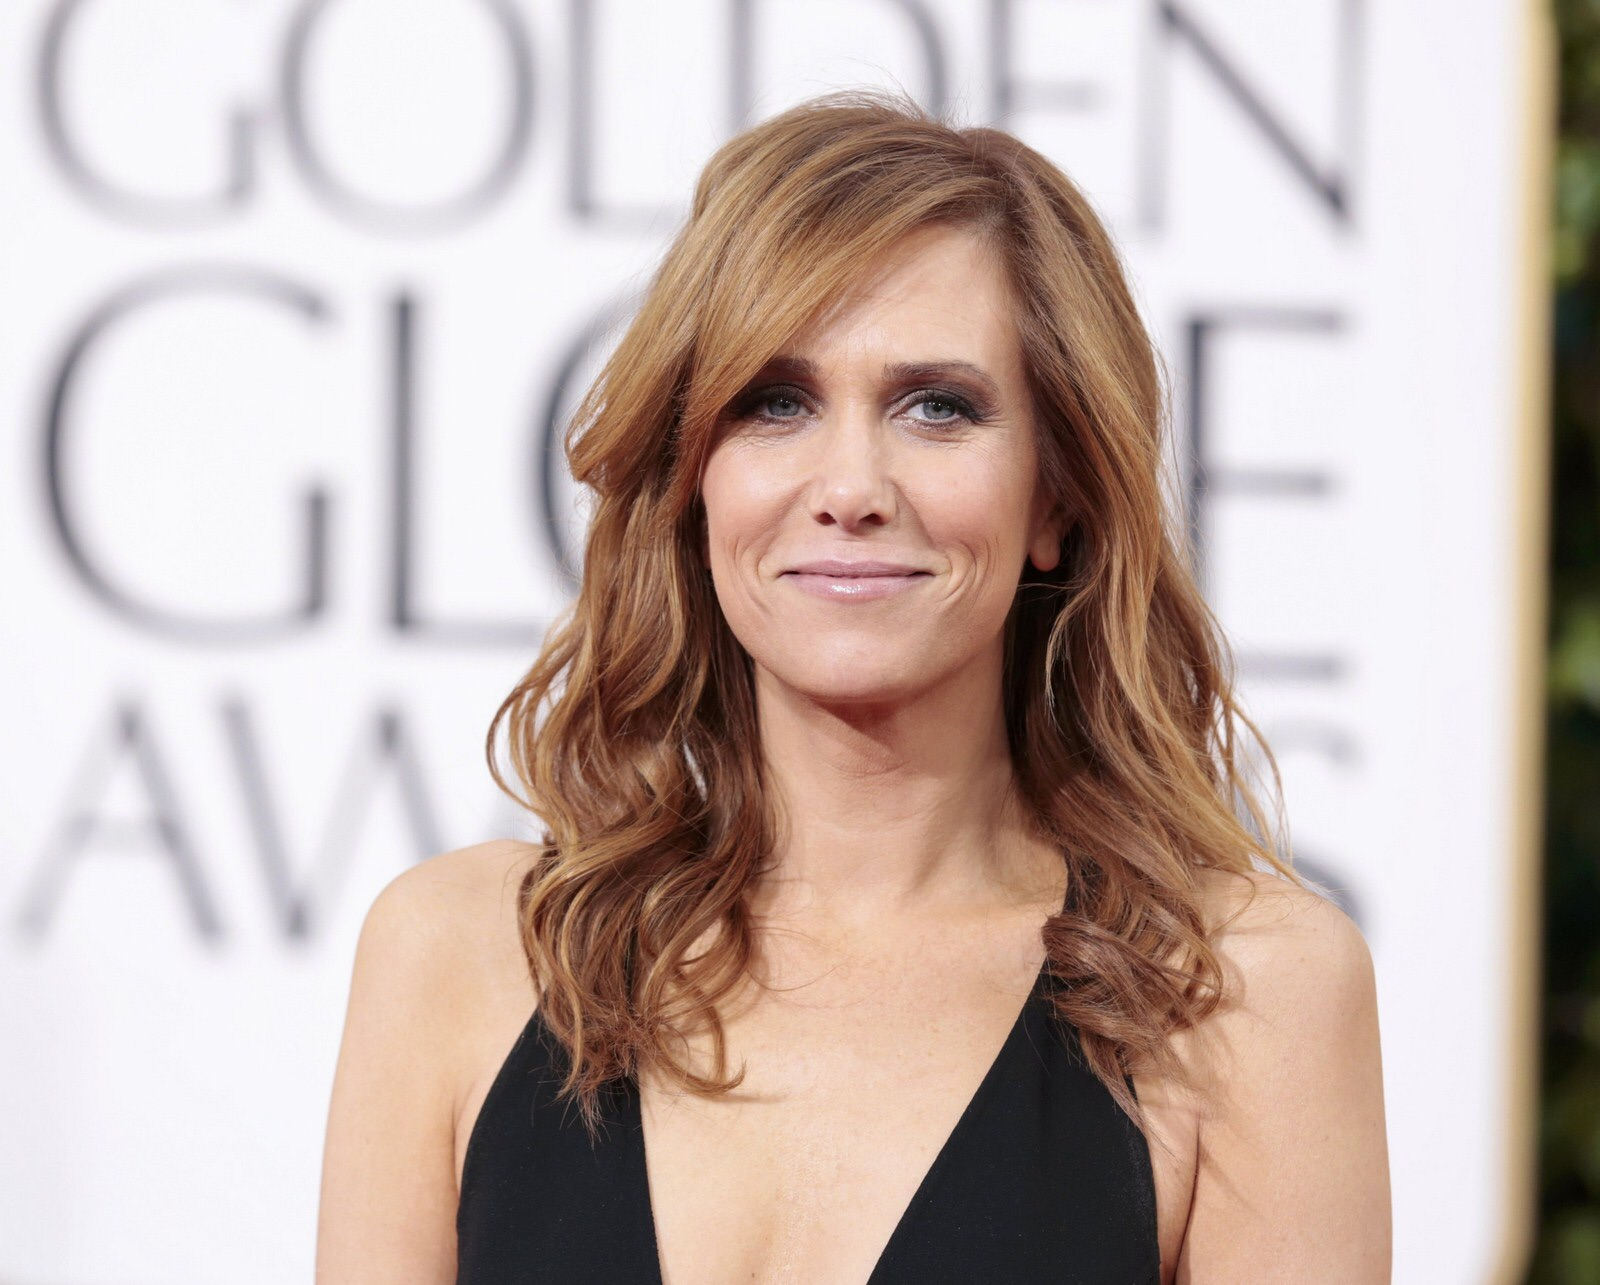 Kristen Wiig to present at the Golden Globes